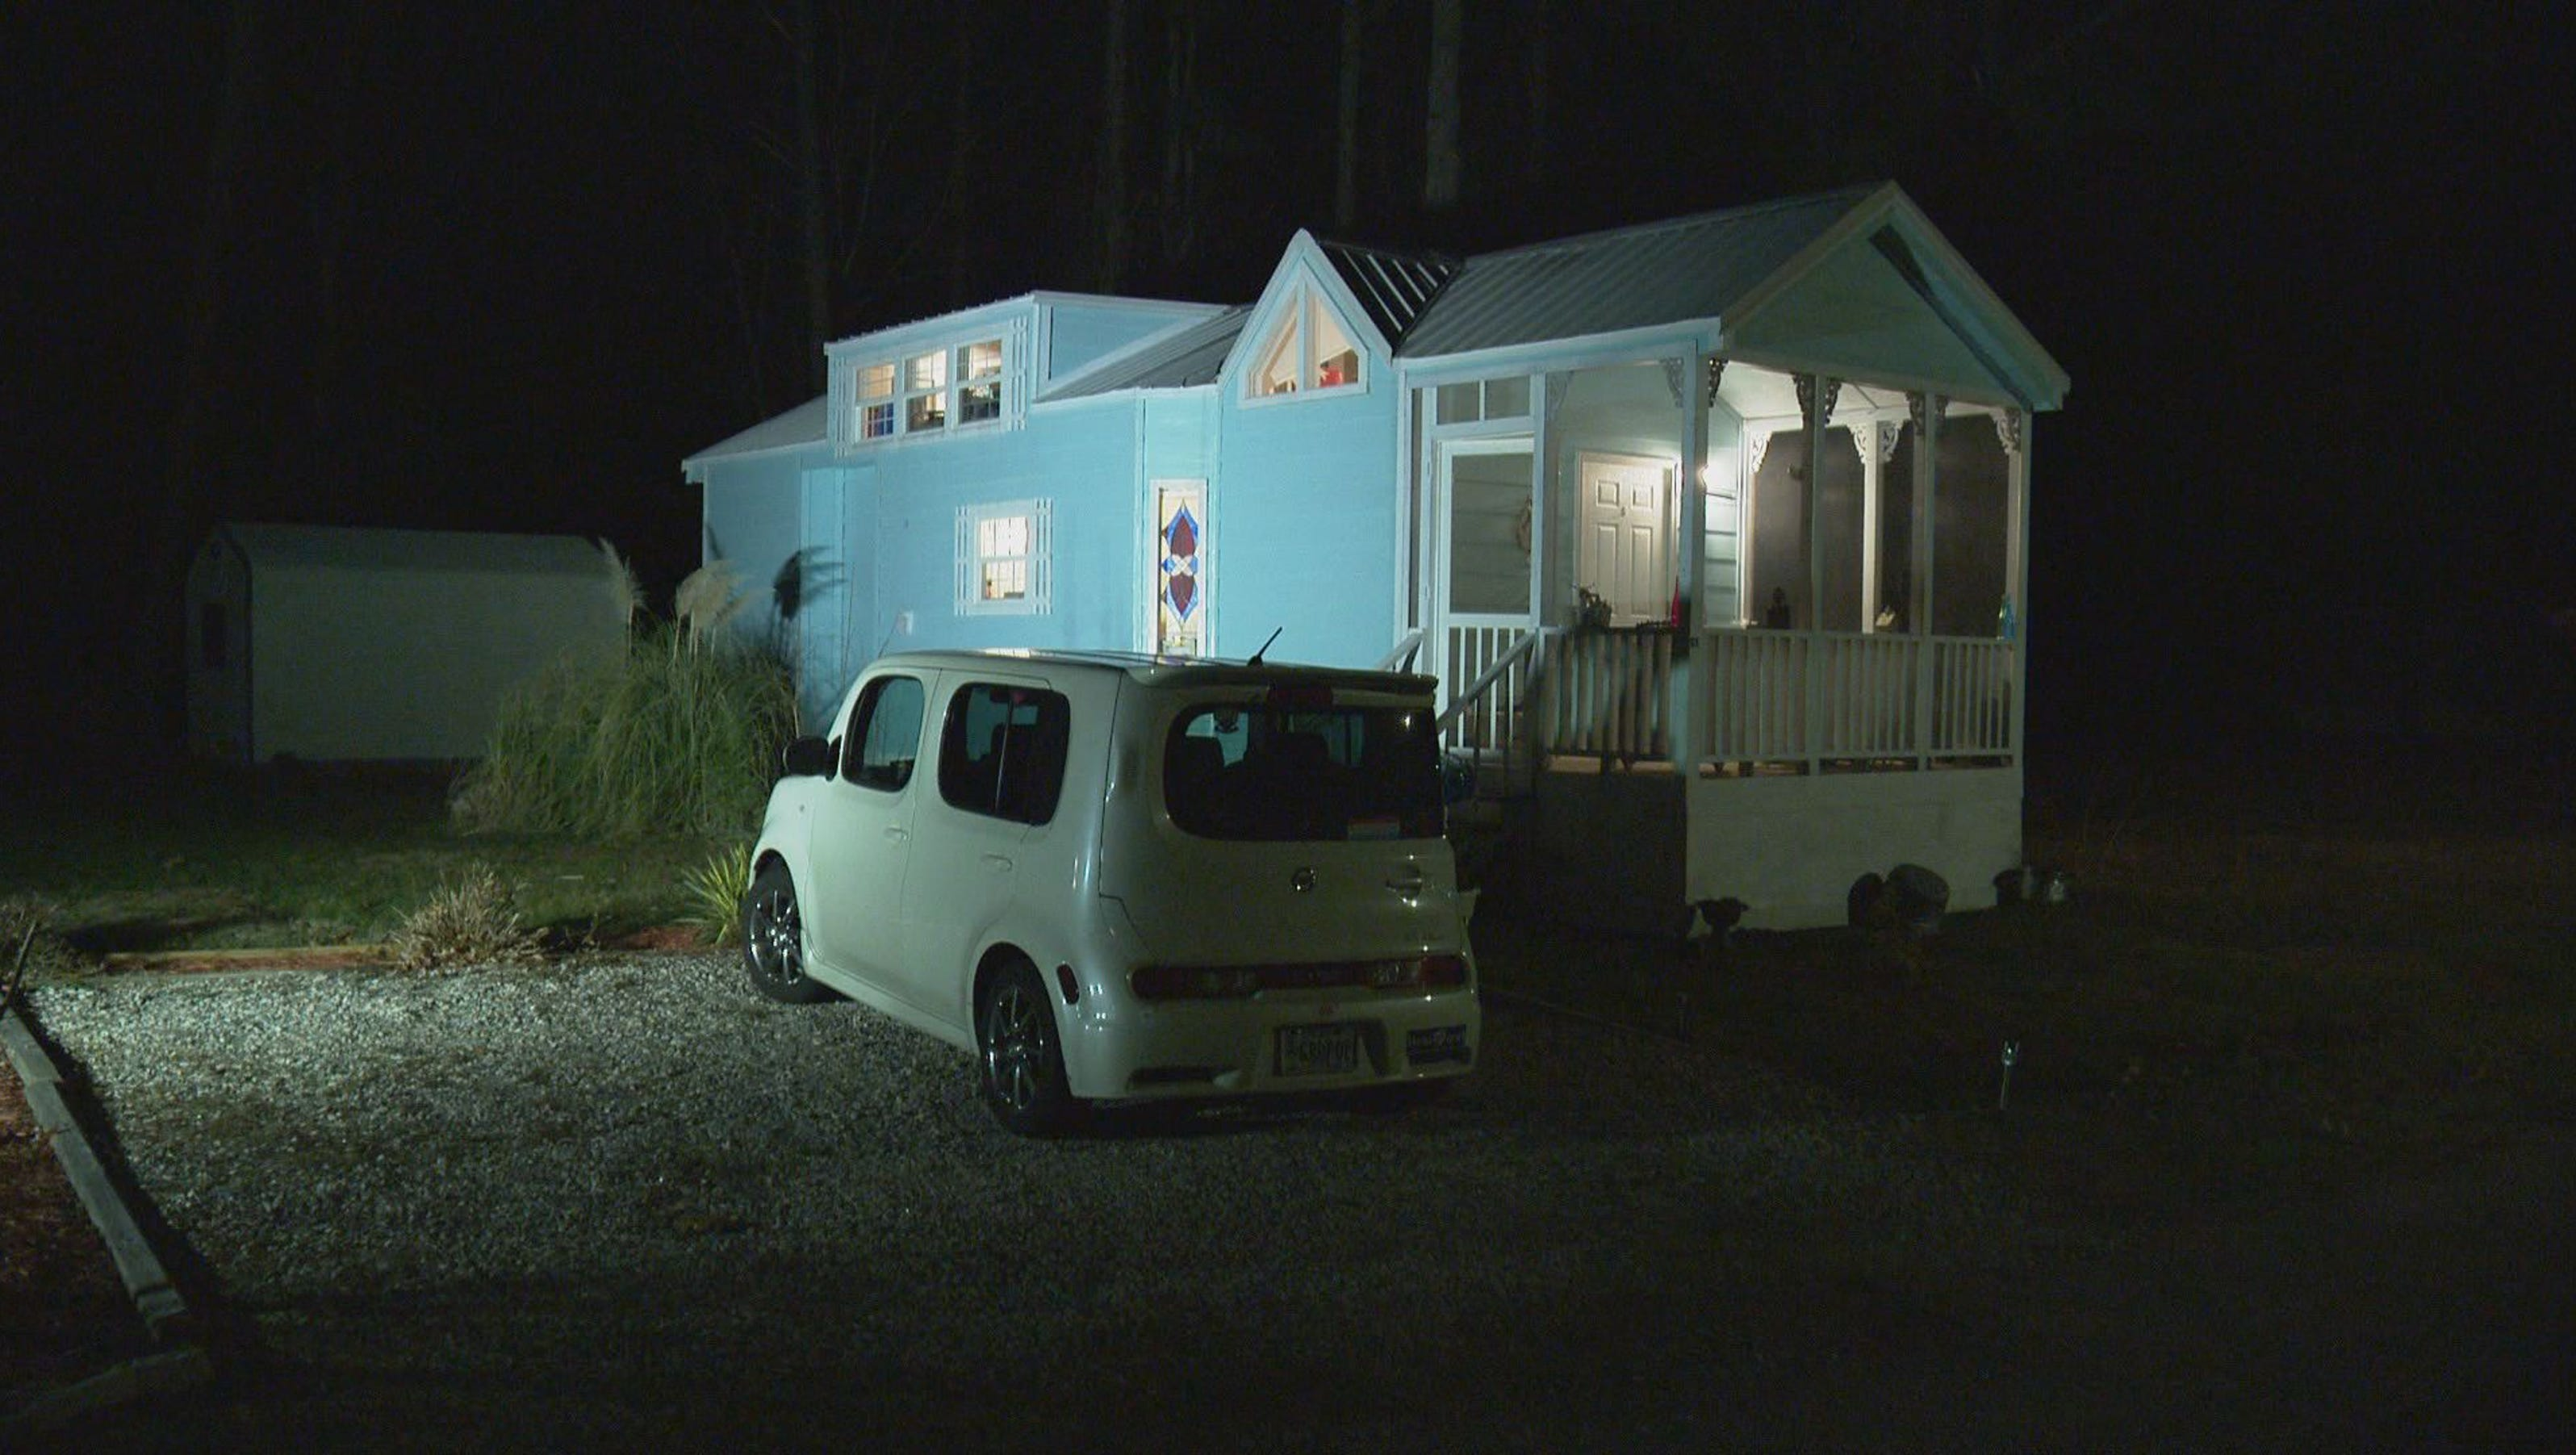 York county couple fights to keep tiny house for Tiny house nation where are they now